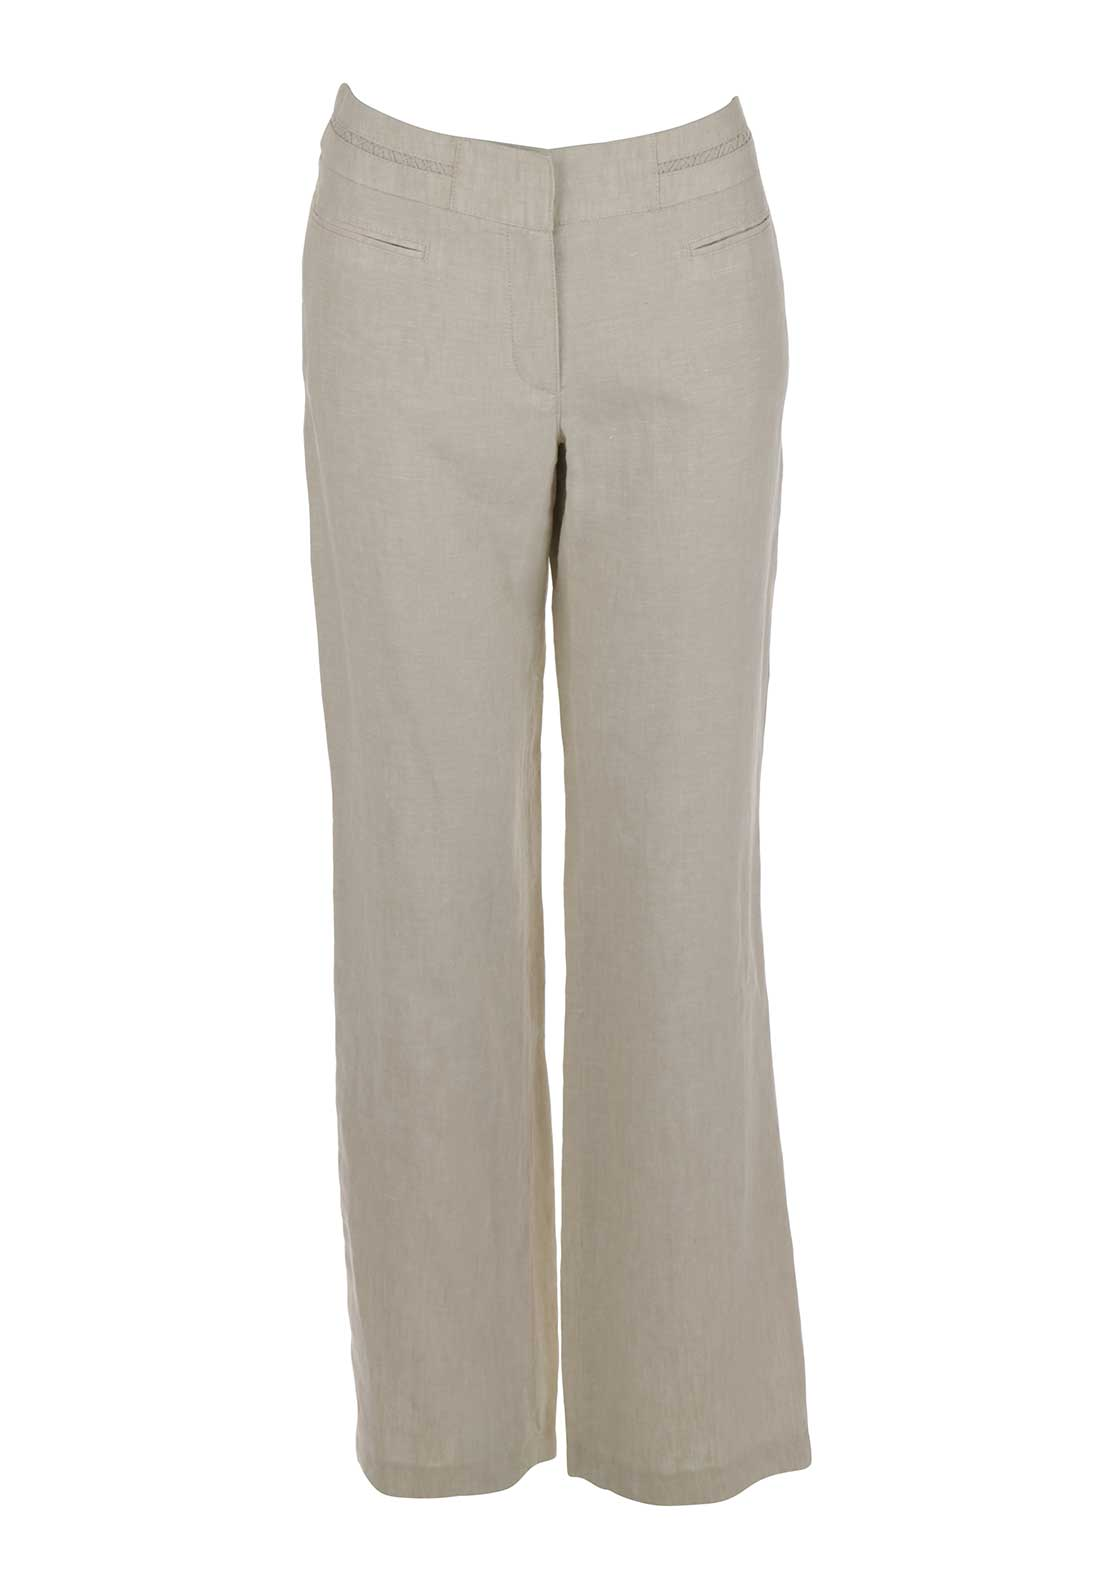 Gerry Weber Embroidered Waistband Loose Fit Linen Trousers, Beige